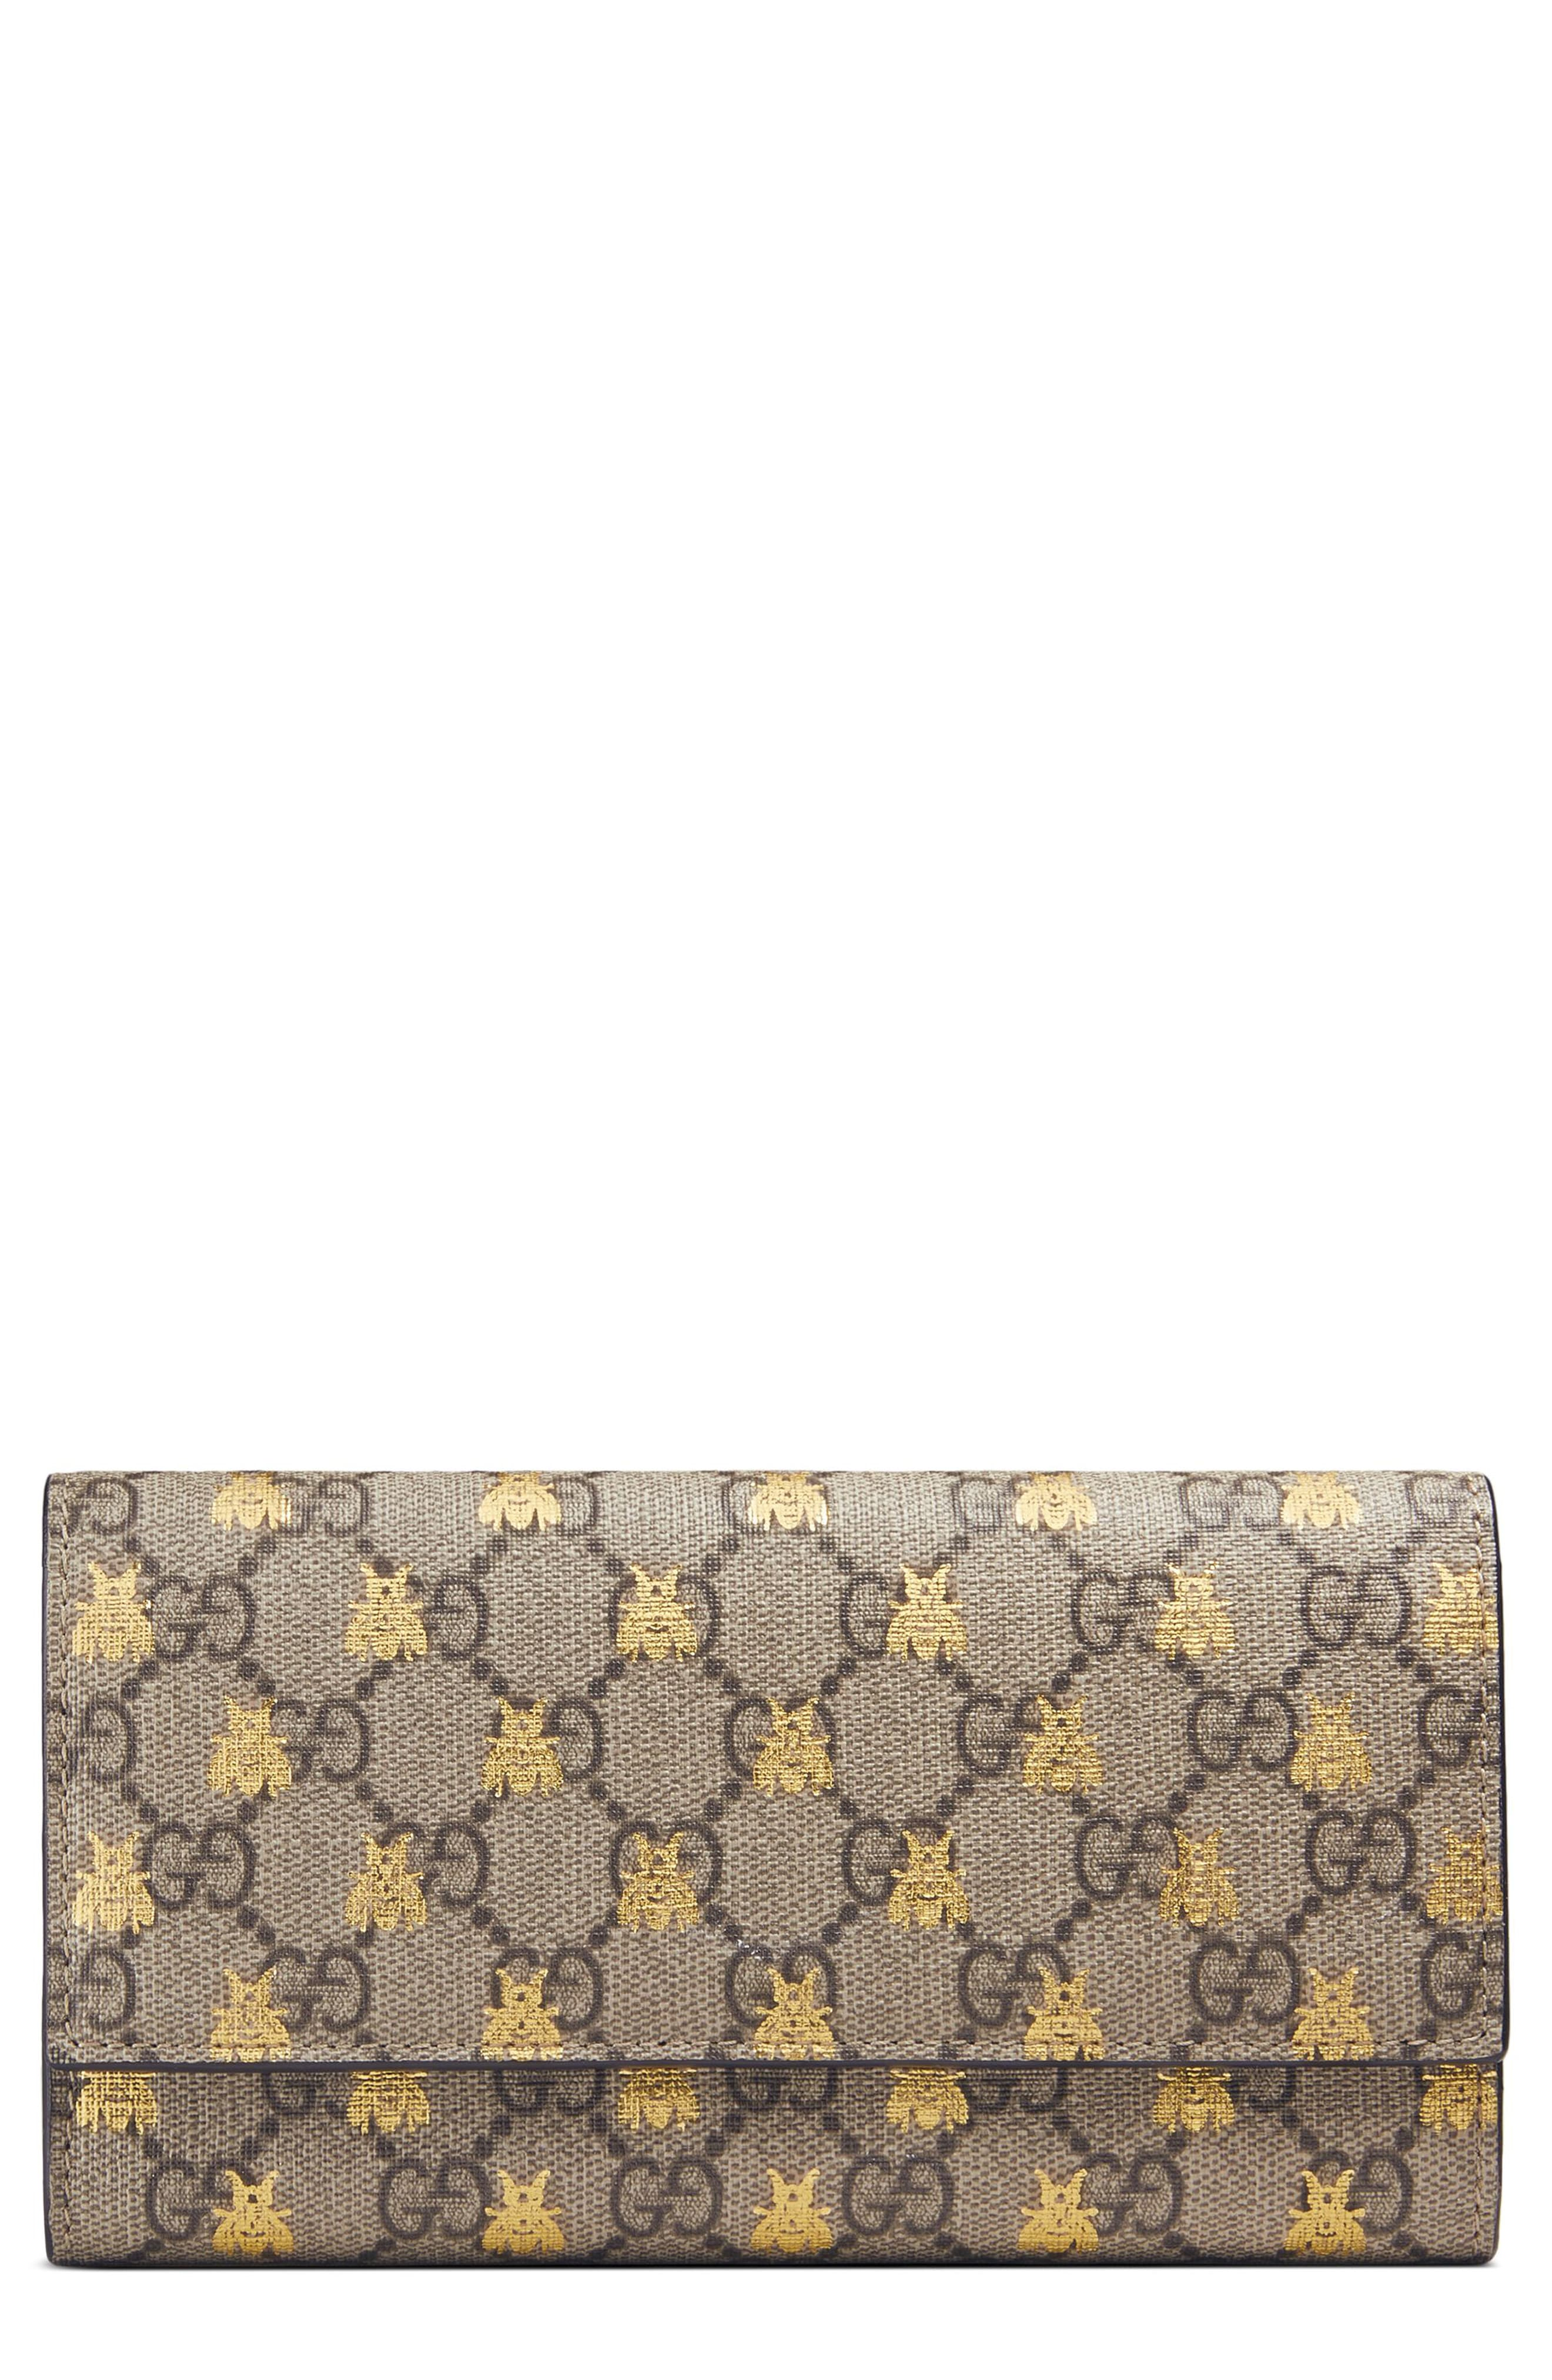 466d2a1d6 Gucci Linea Bee GG Supreme Continental Wallet in 2019 | Products ...